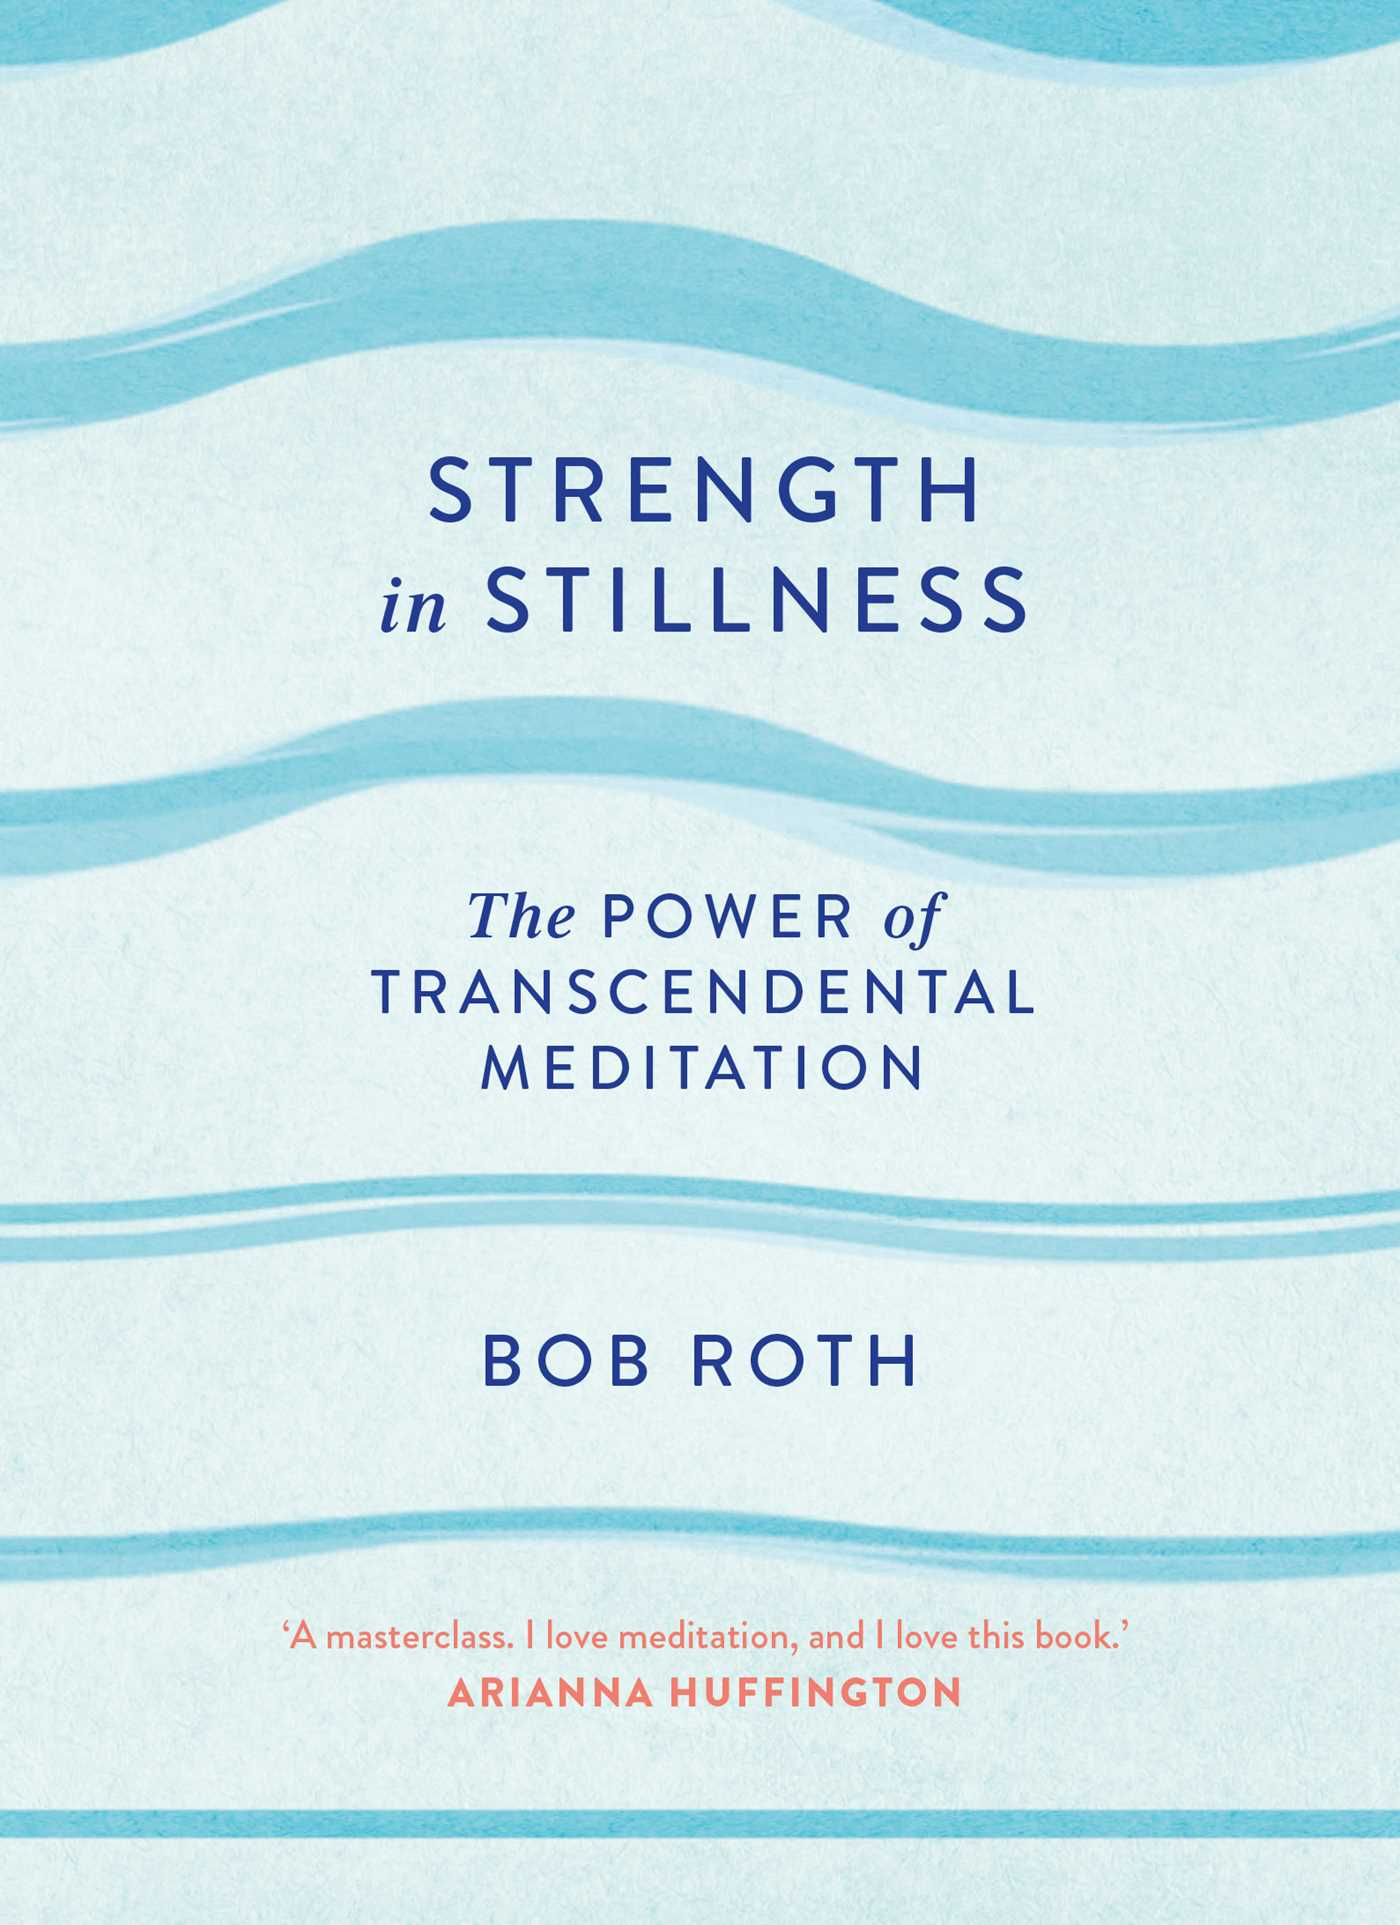 Strength in stillness 9781471161636 hr